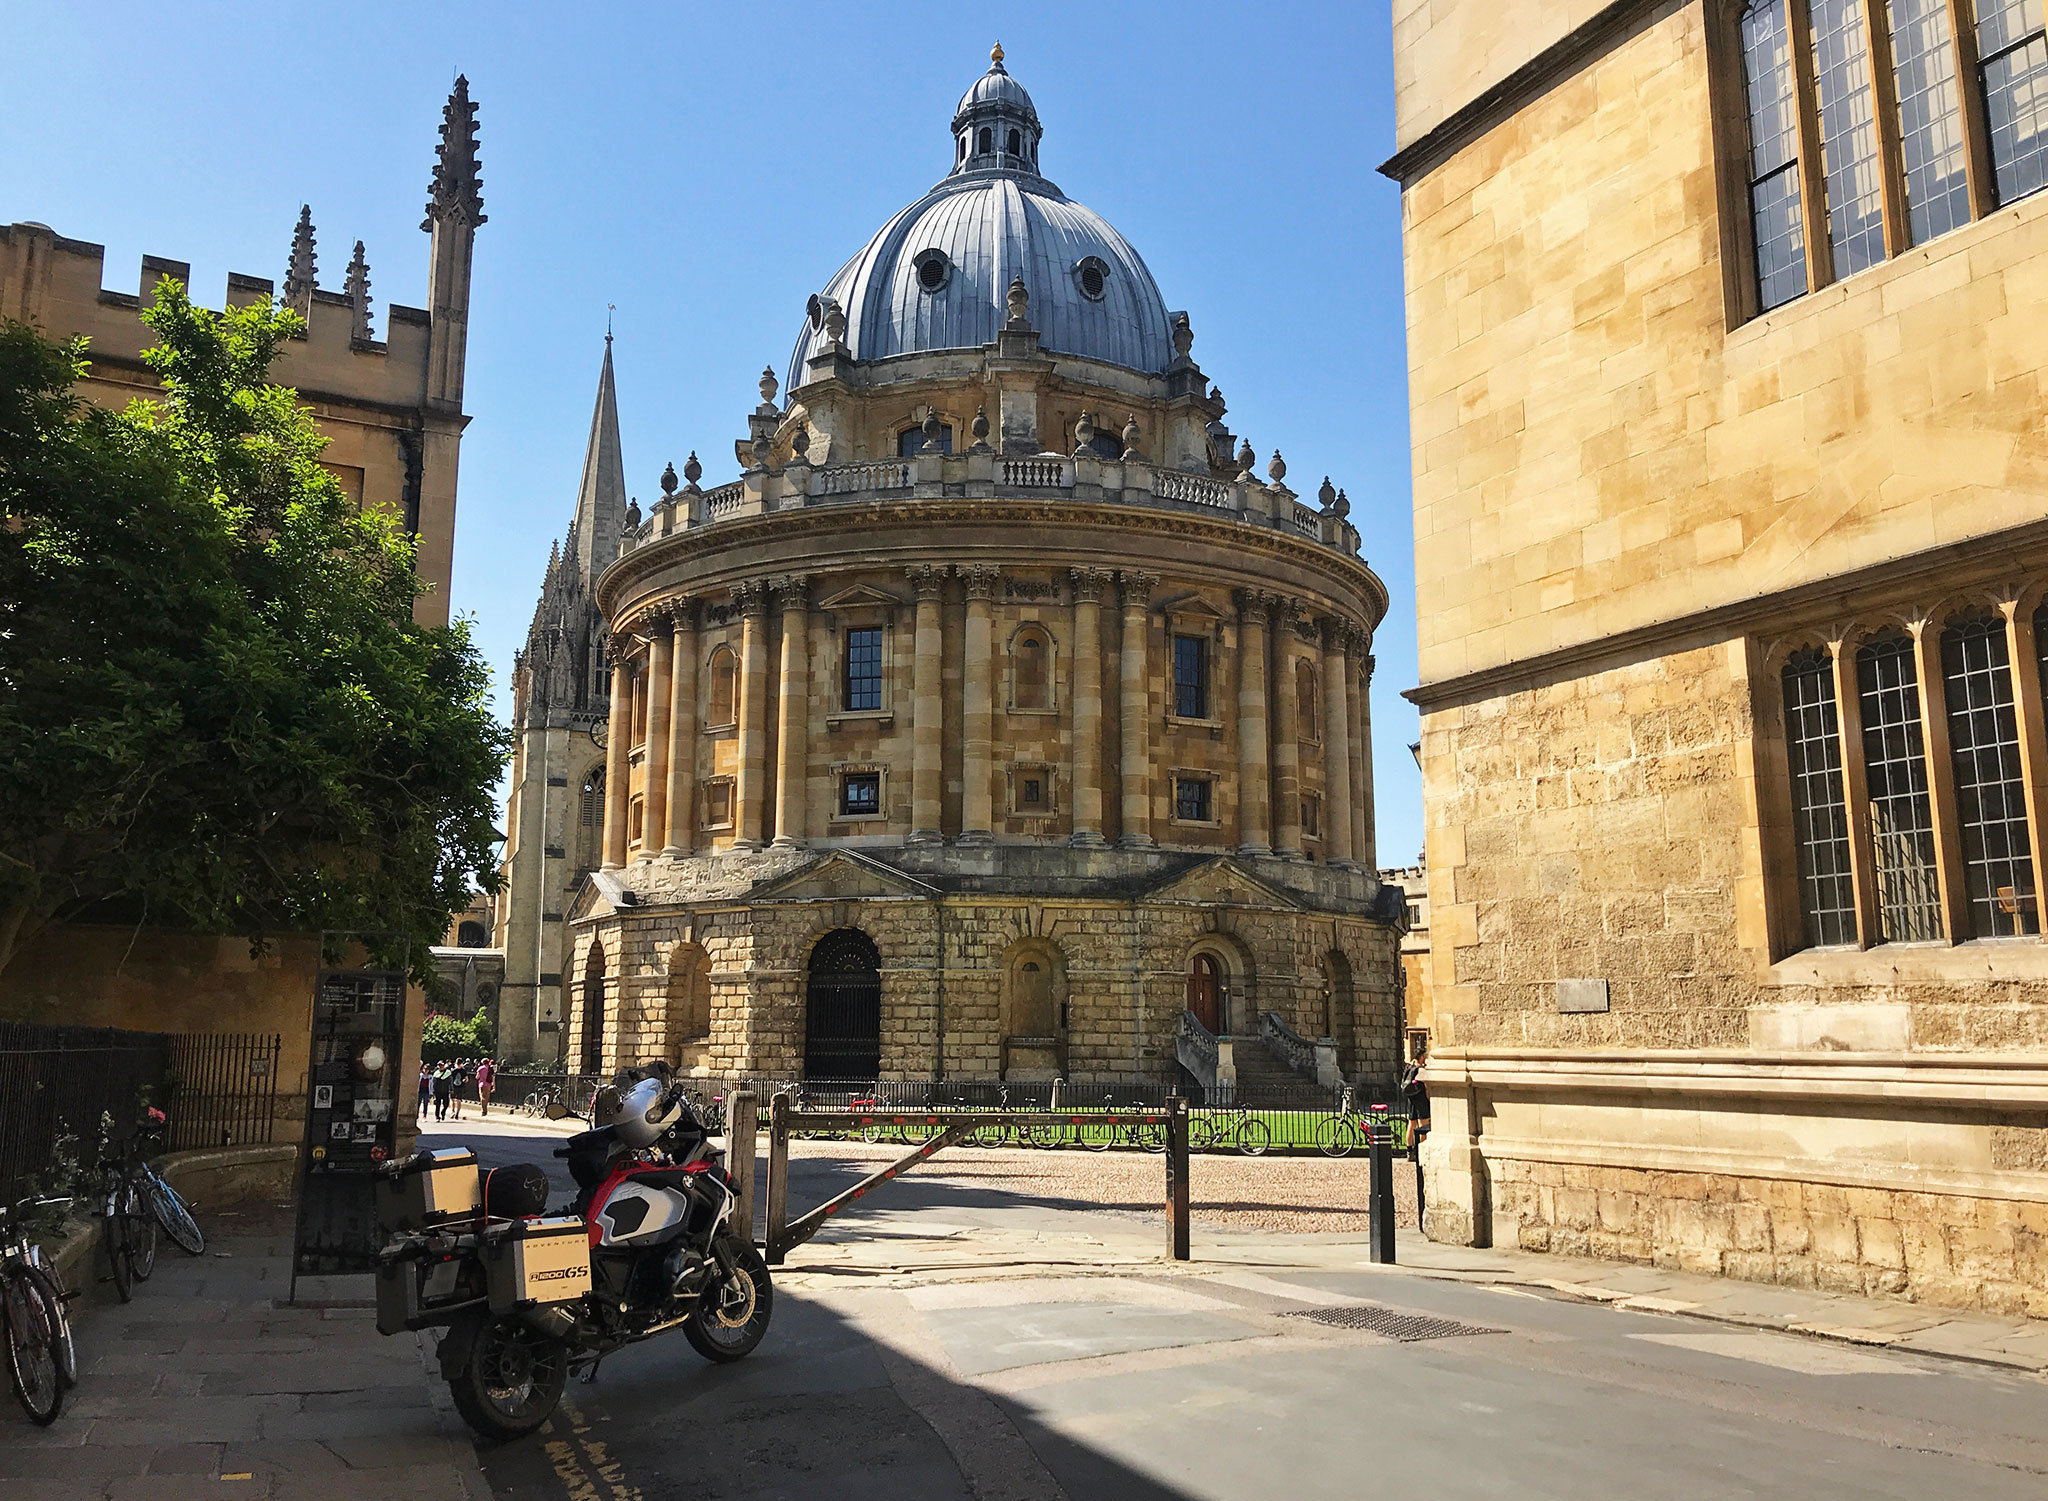 Oxford University, the Radcliffe Camera